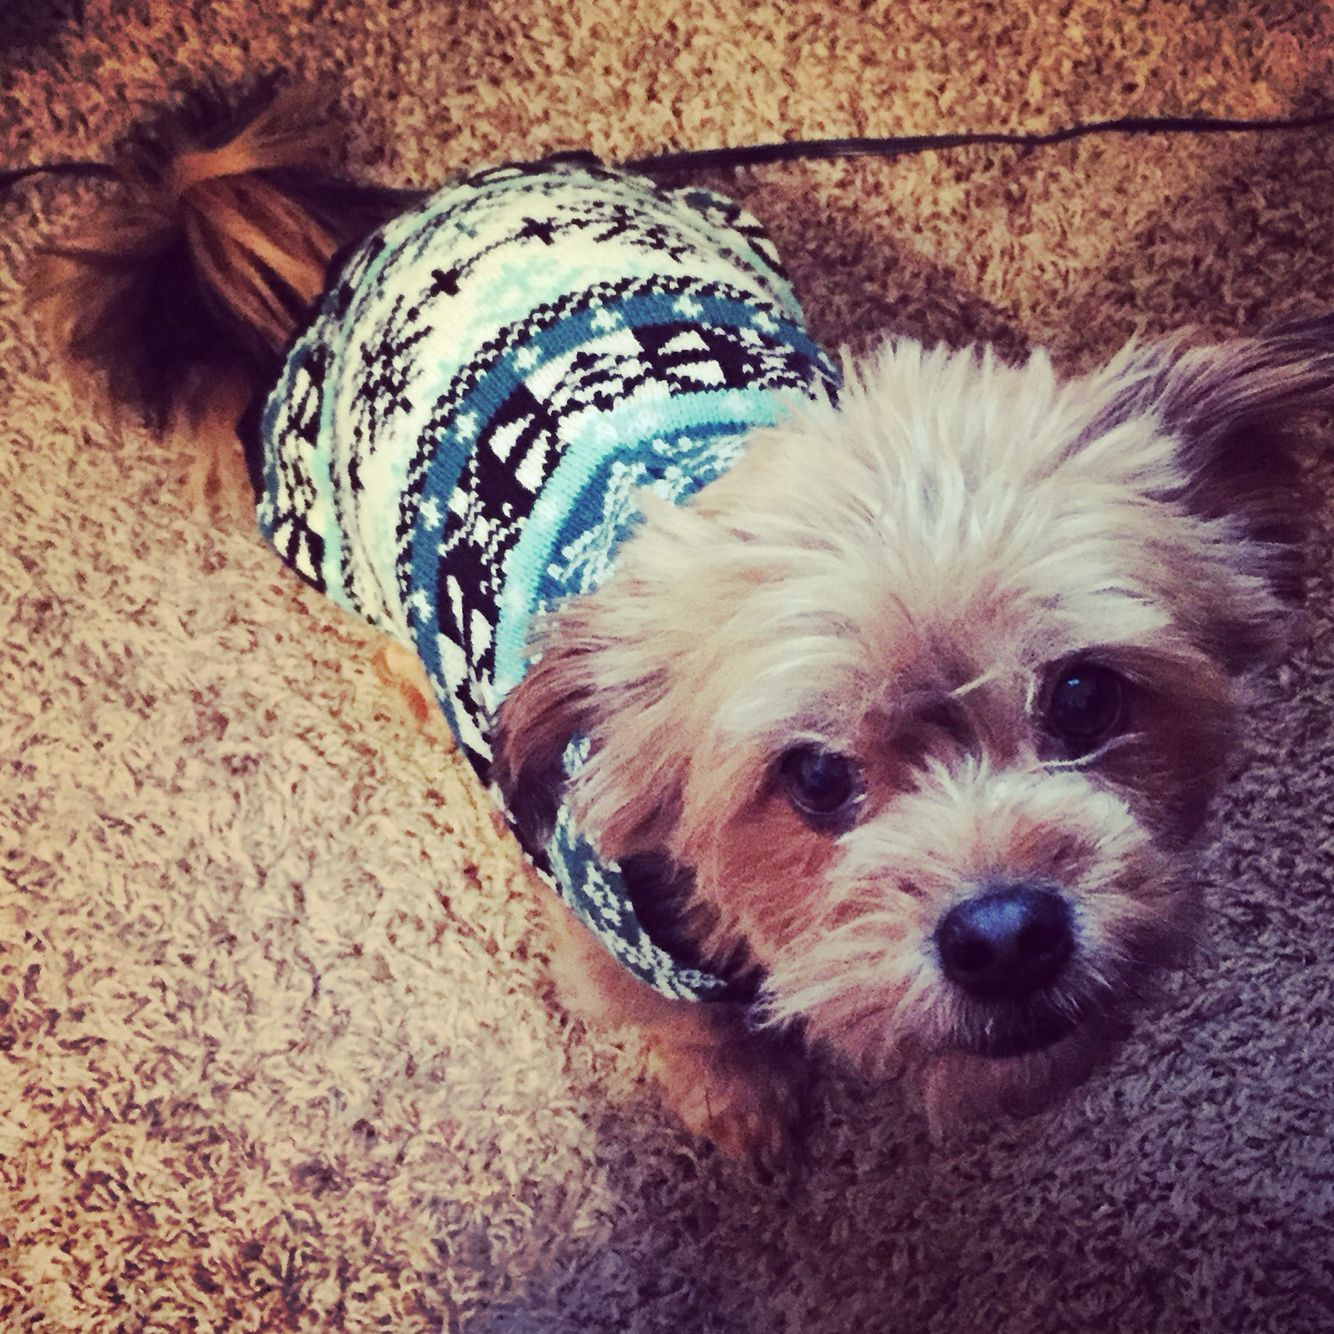 Chewy bear wearing his sweater